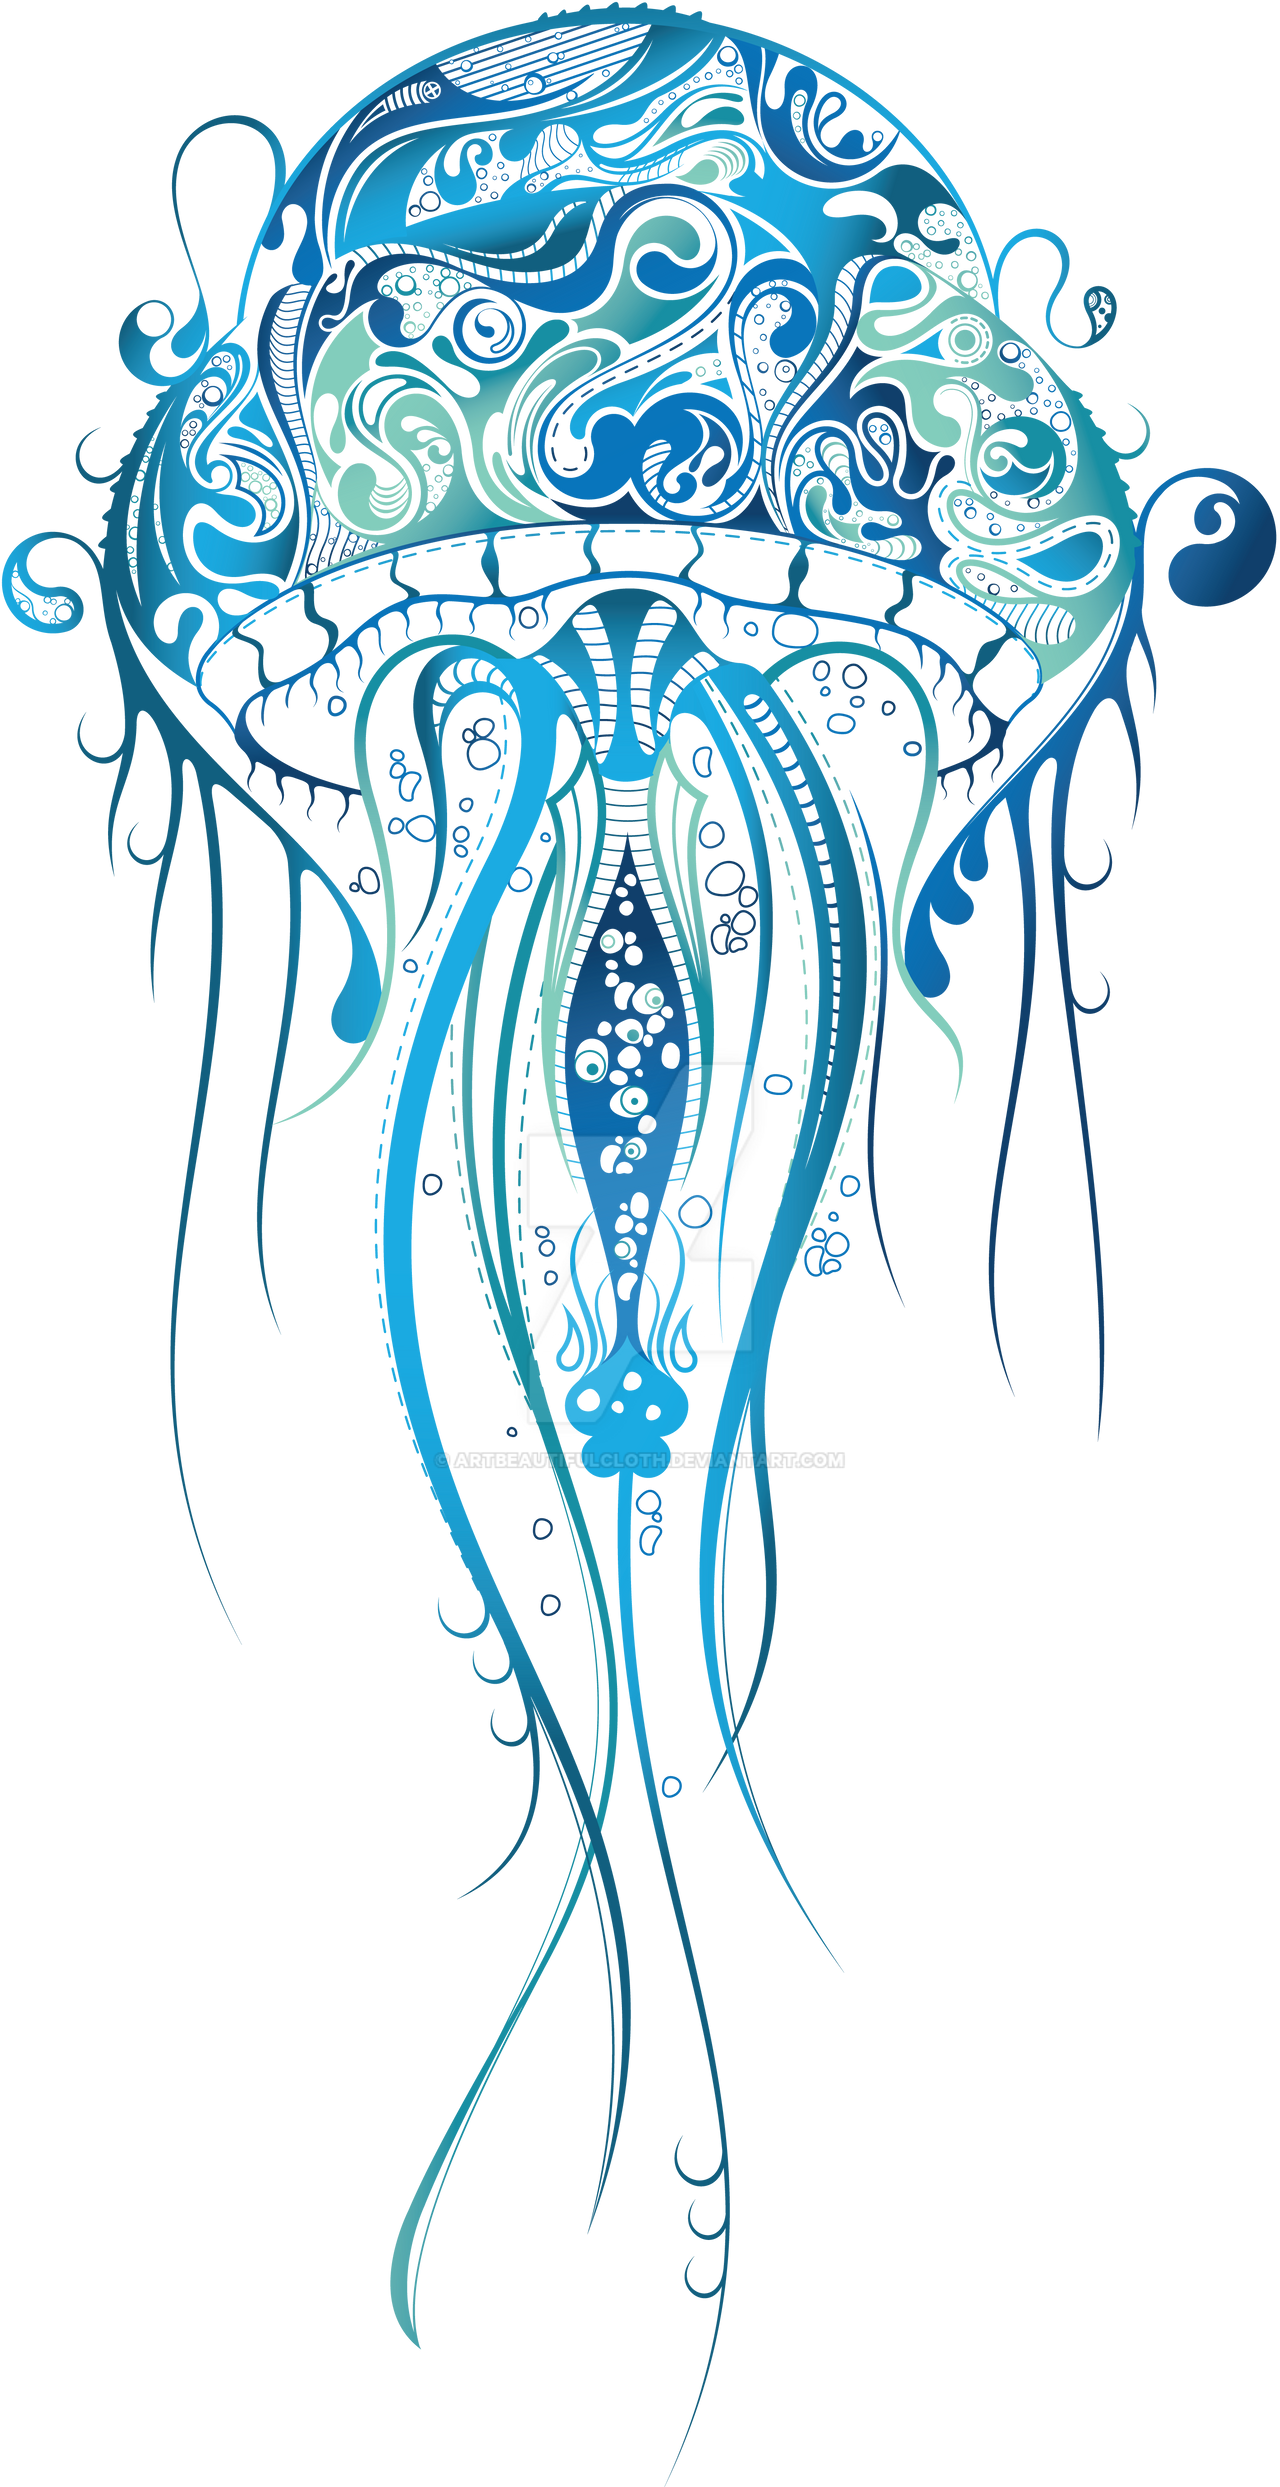 Blue jellyfish by artbeautifulcloth on deviantart for Jelly fish art